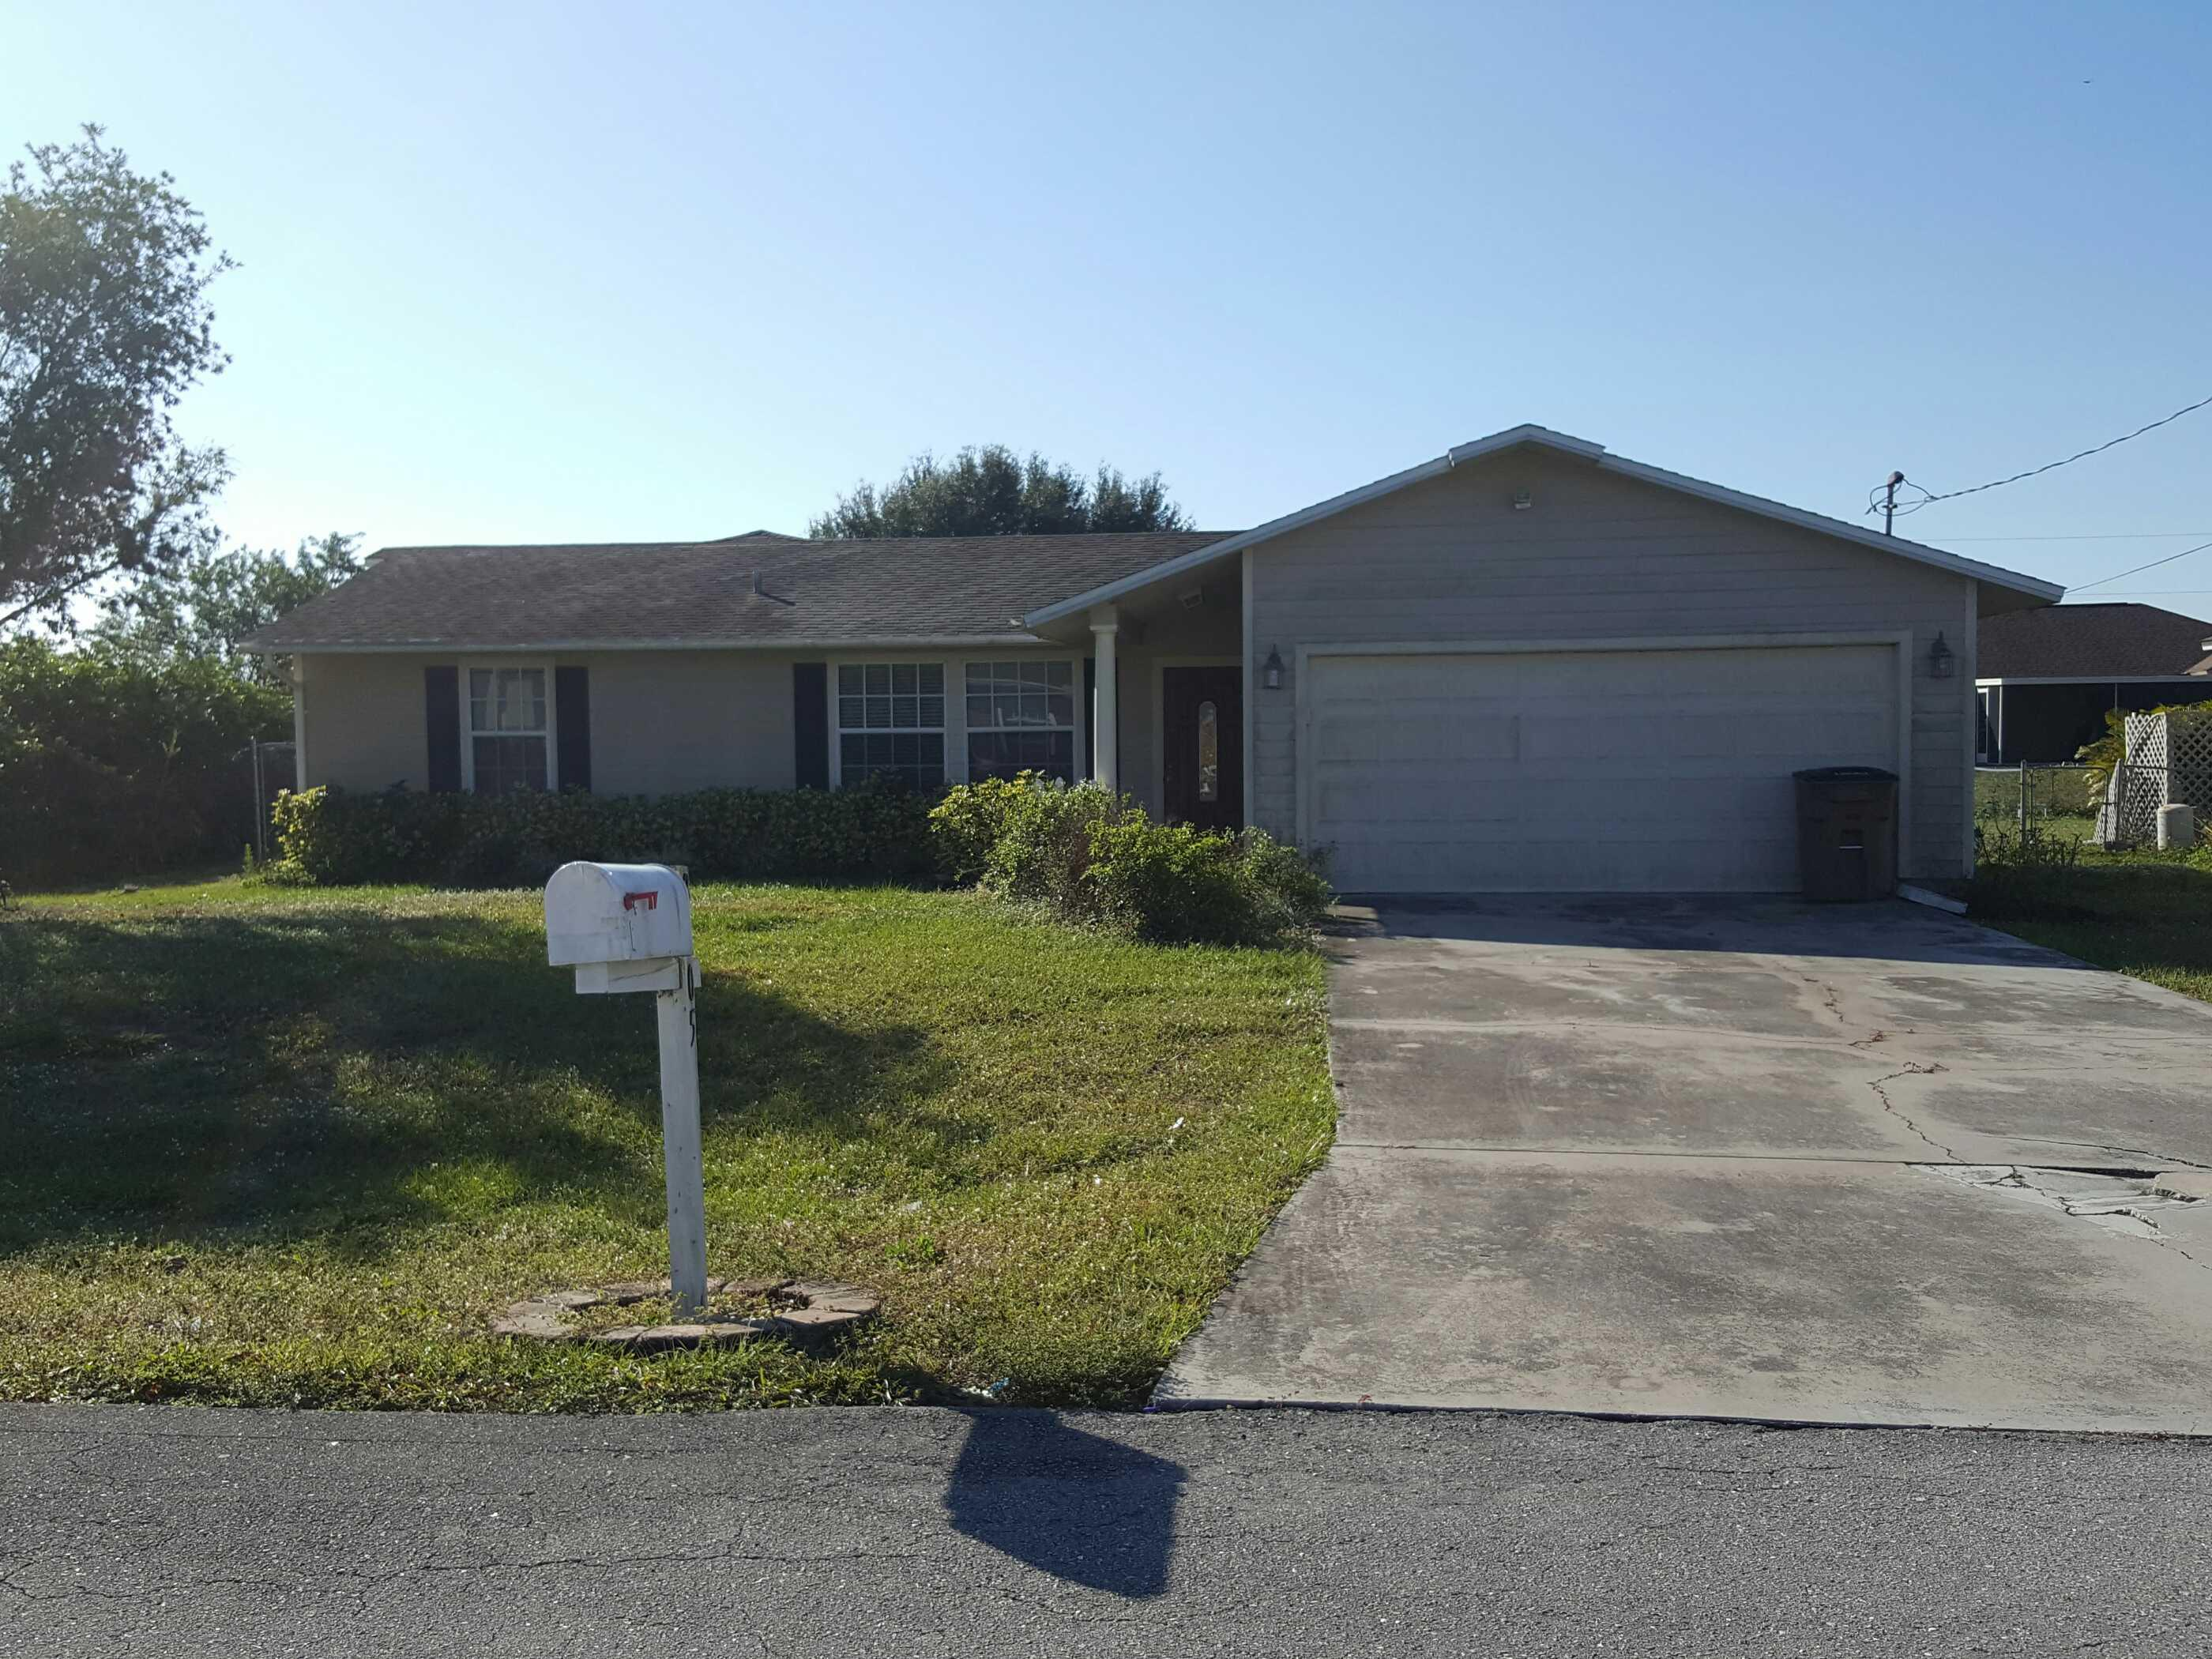 3105 13th St W, Lehigh Acres, FL 33971